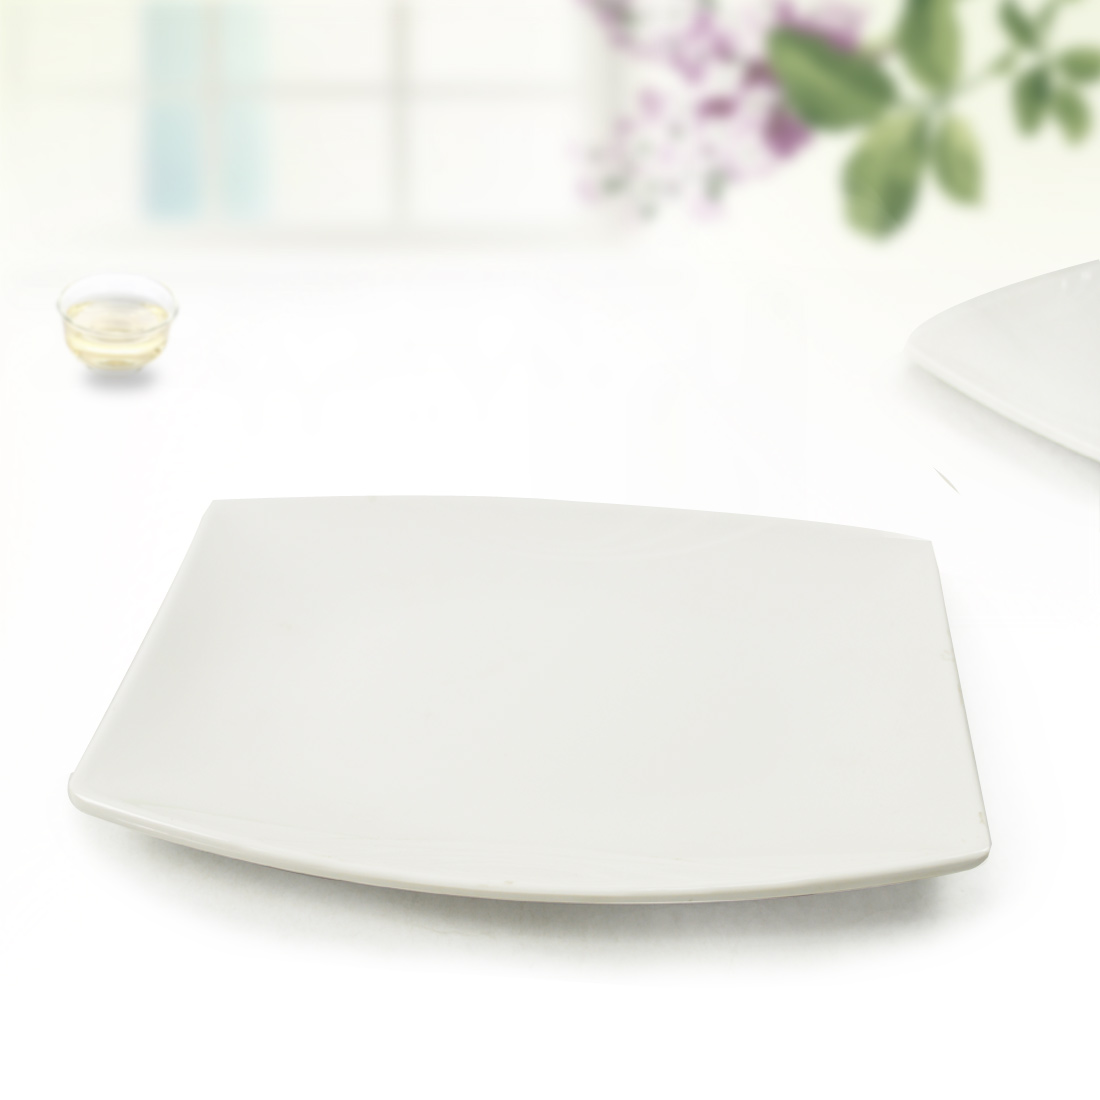 Porcelain plastic tableware white porcelain line cooking lettce the plate hot pot plate(China (Mainland))